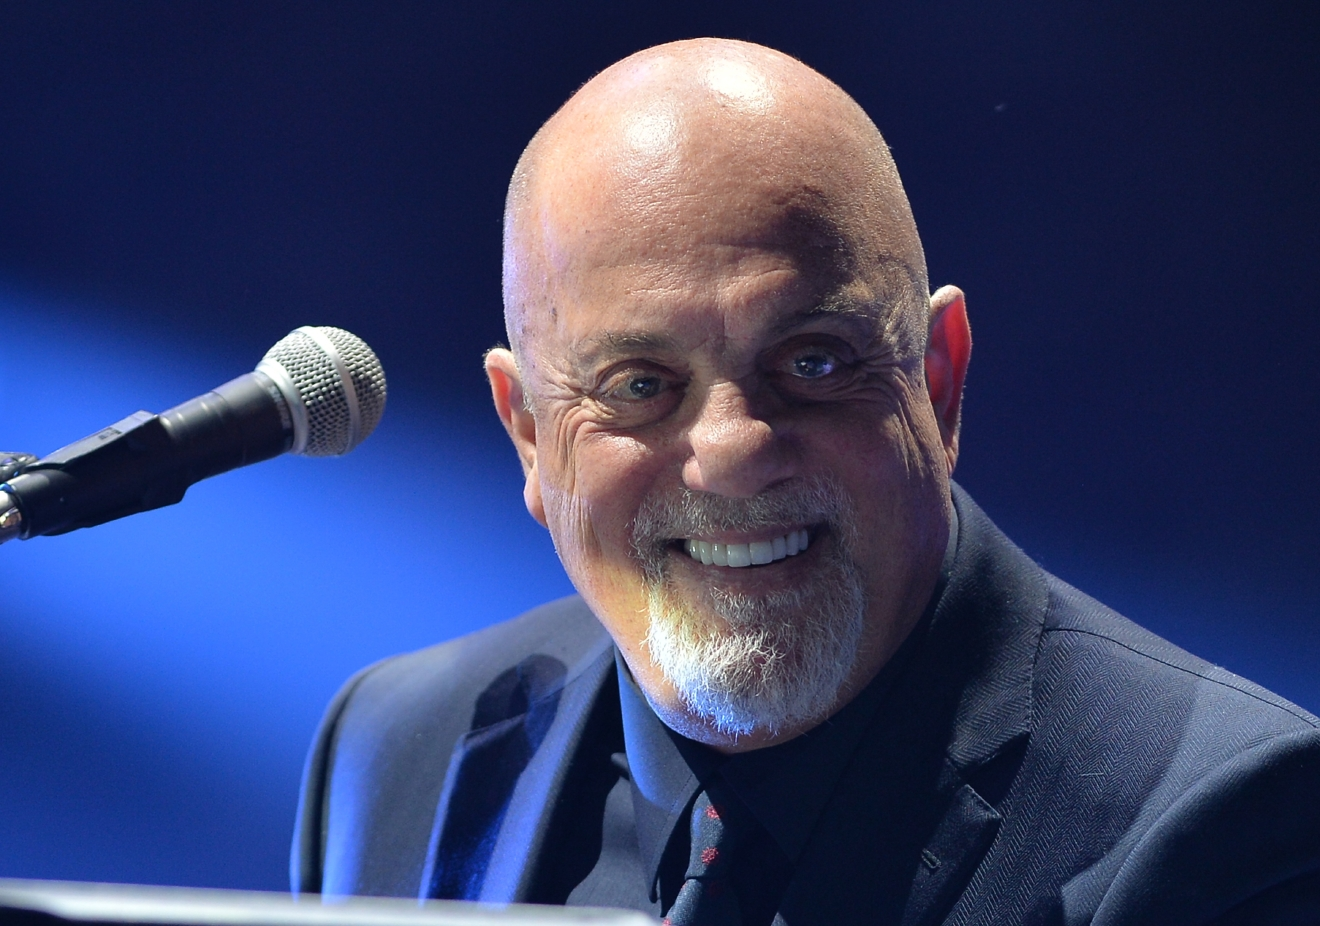 Billy Joel performs live in concert at the American Airlines Arena in Miami Jan. 31, 2015. (Johnny Louis/WENN.com)